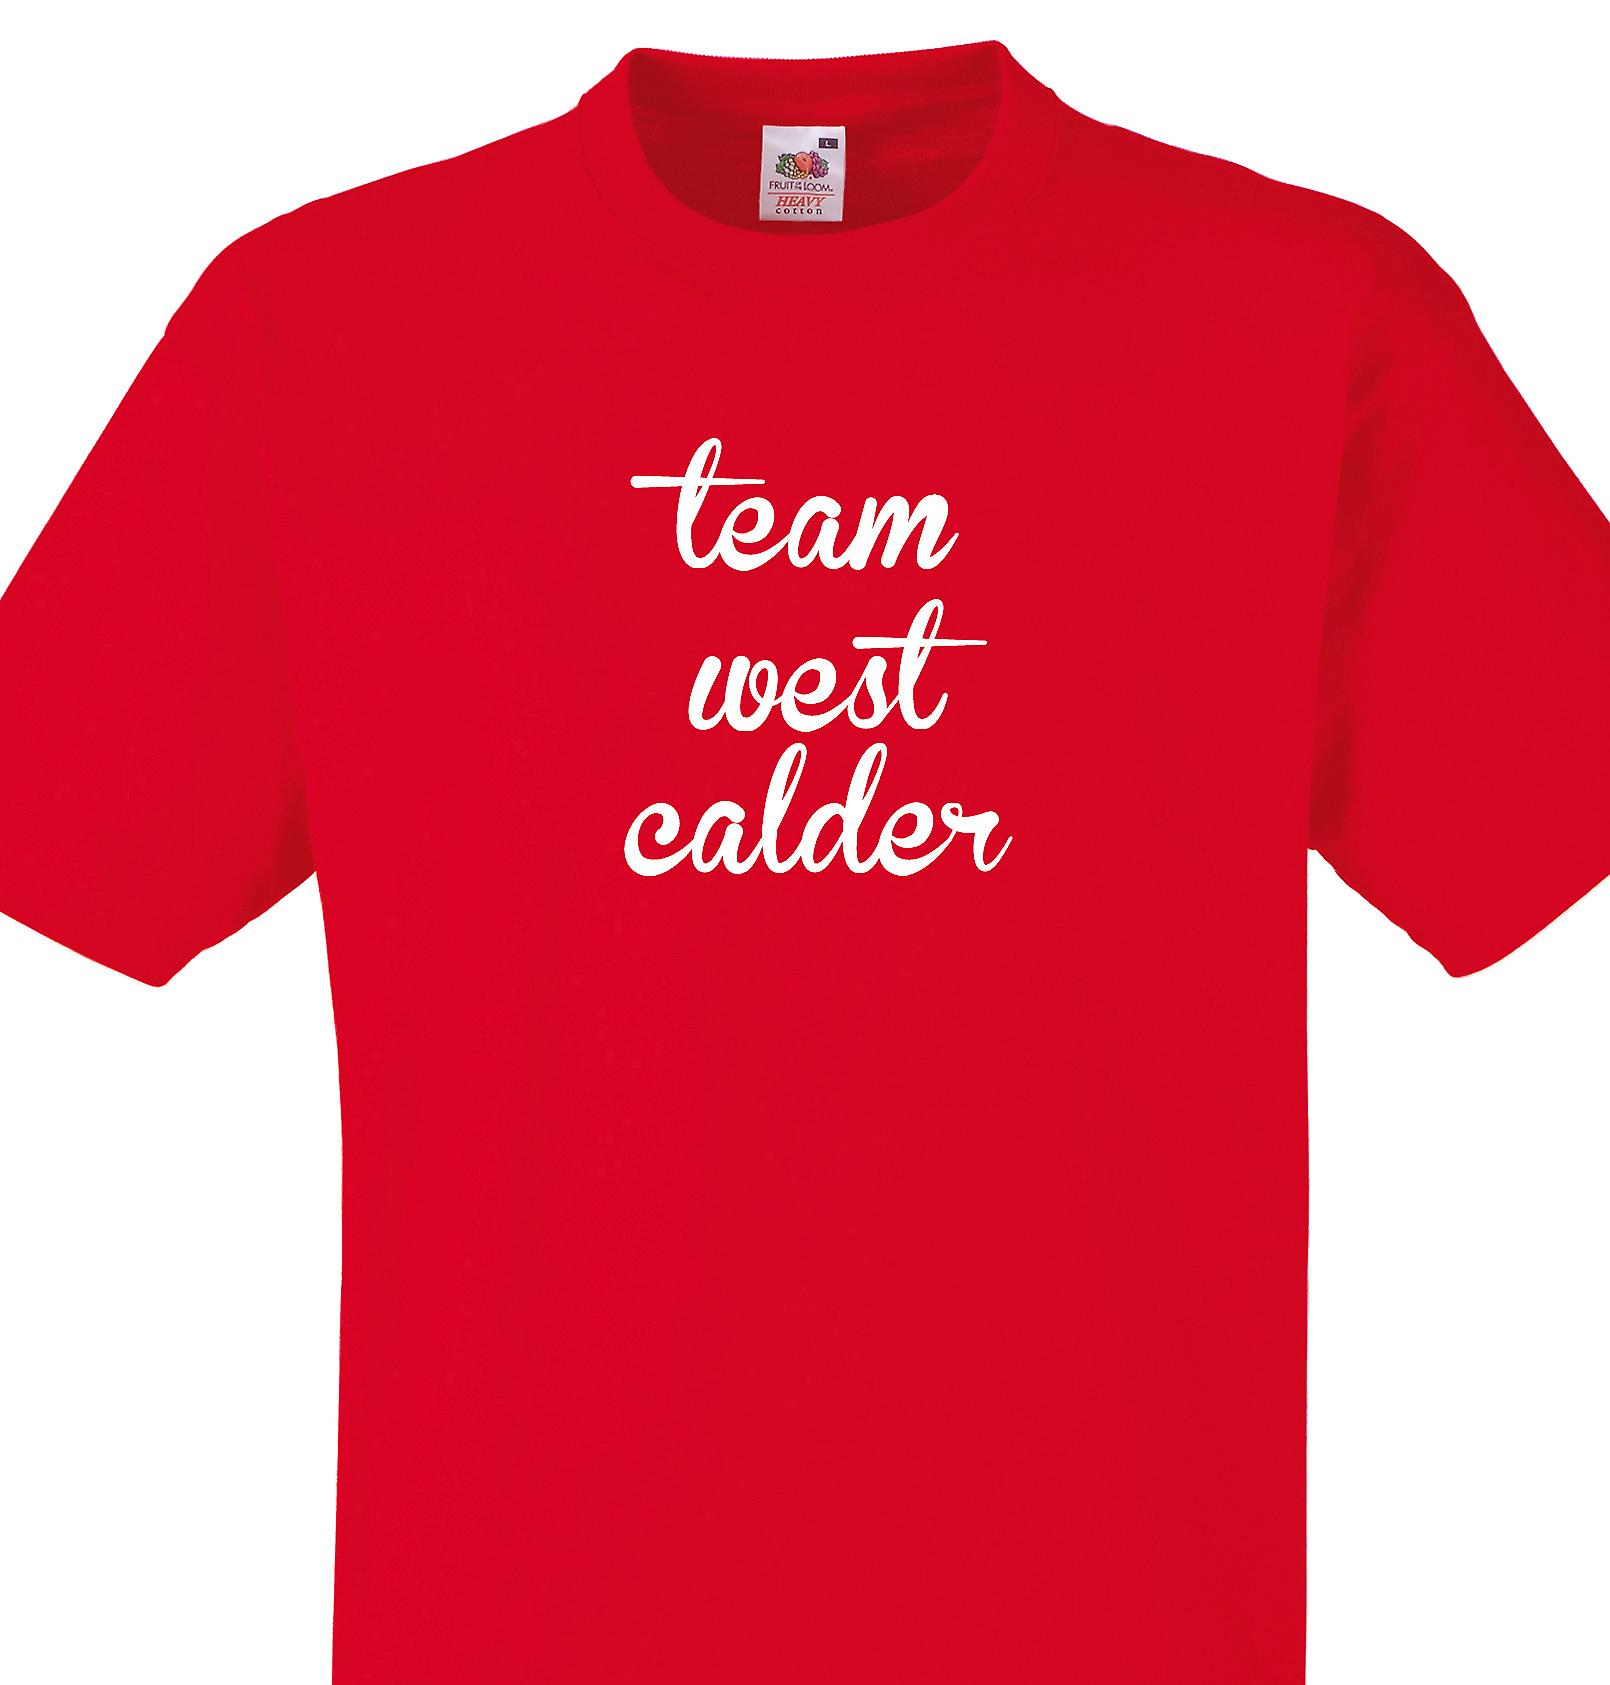 Team West calder Red T shirt